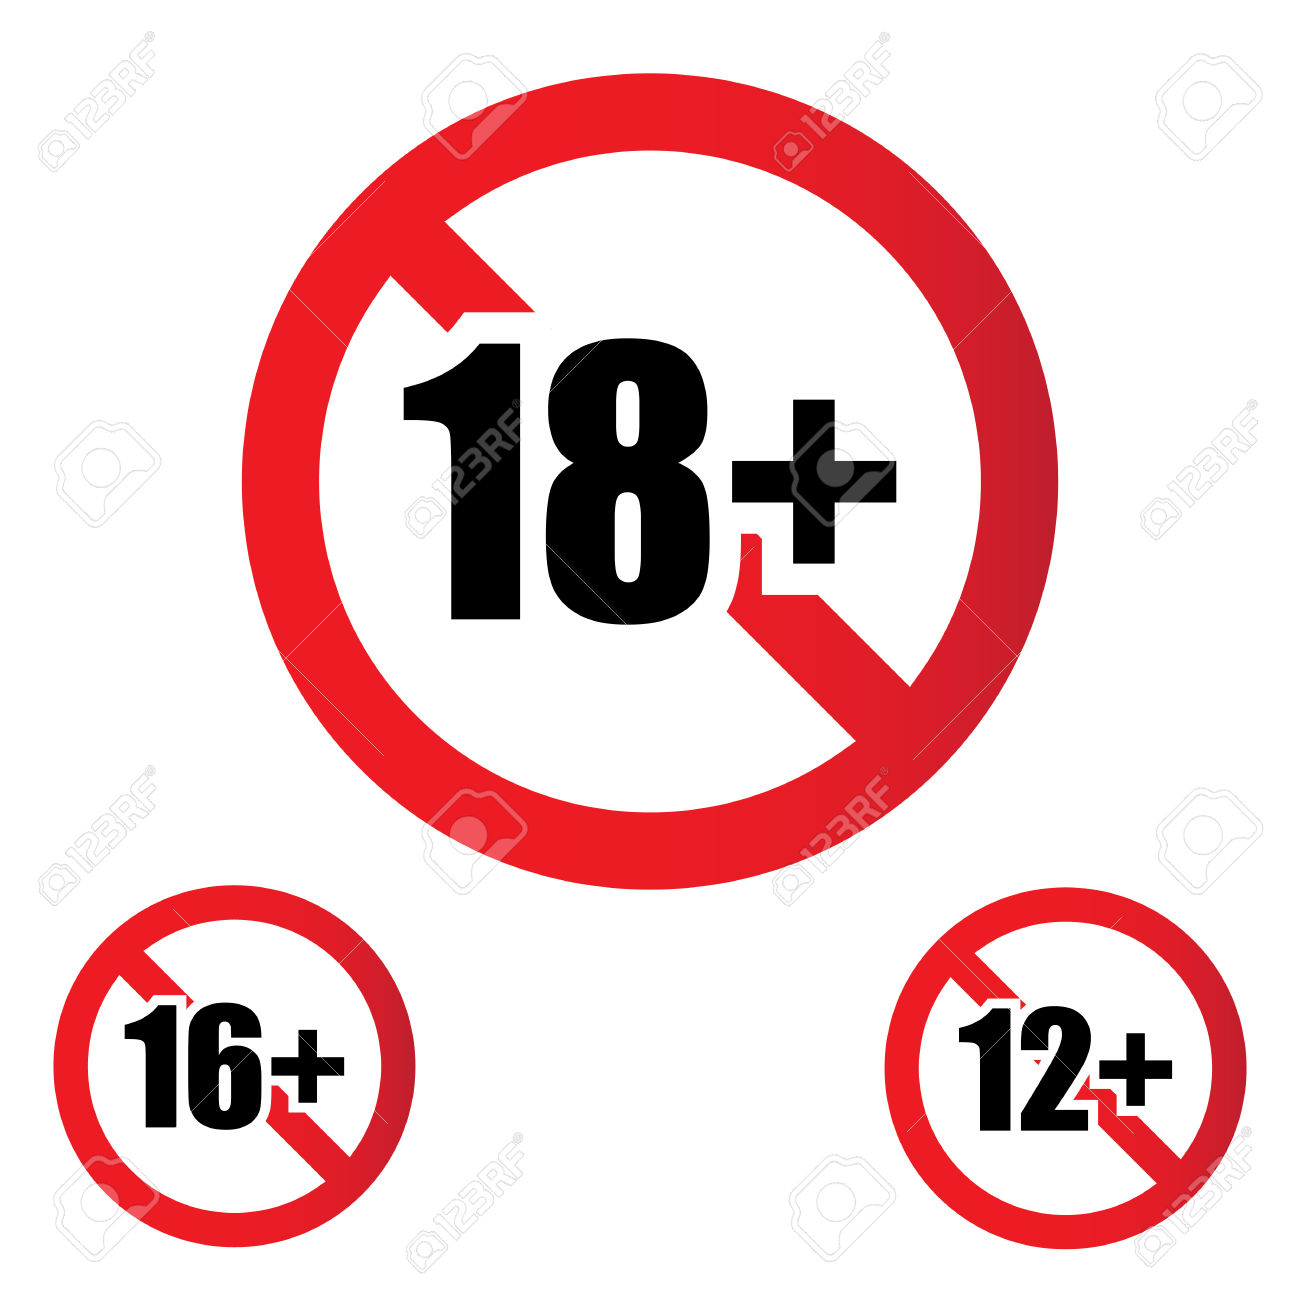 Restriction sign clipart.